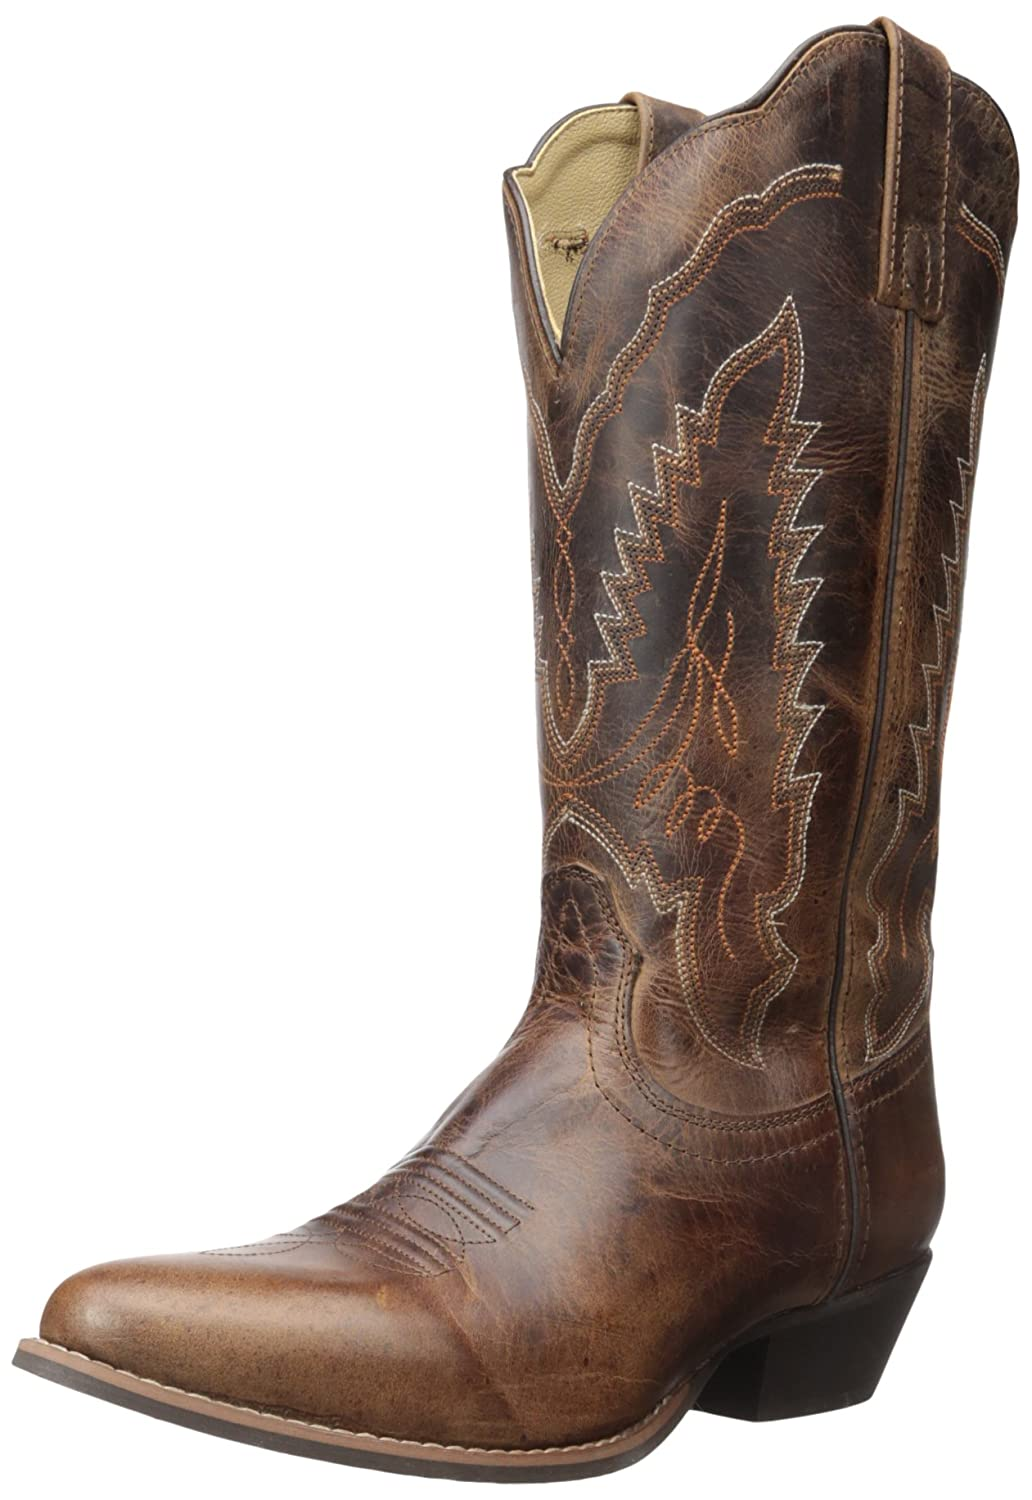 Smoky Mountain Women's Amelia Cowgirl Boot Round Toe - 6476 B00OJ1TSAY 10 B(M) US|Brown